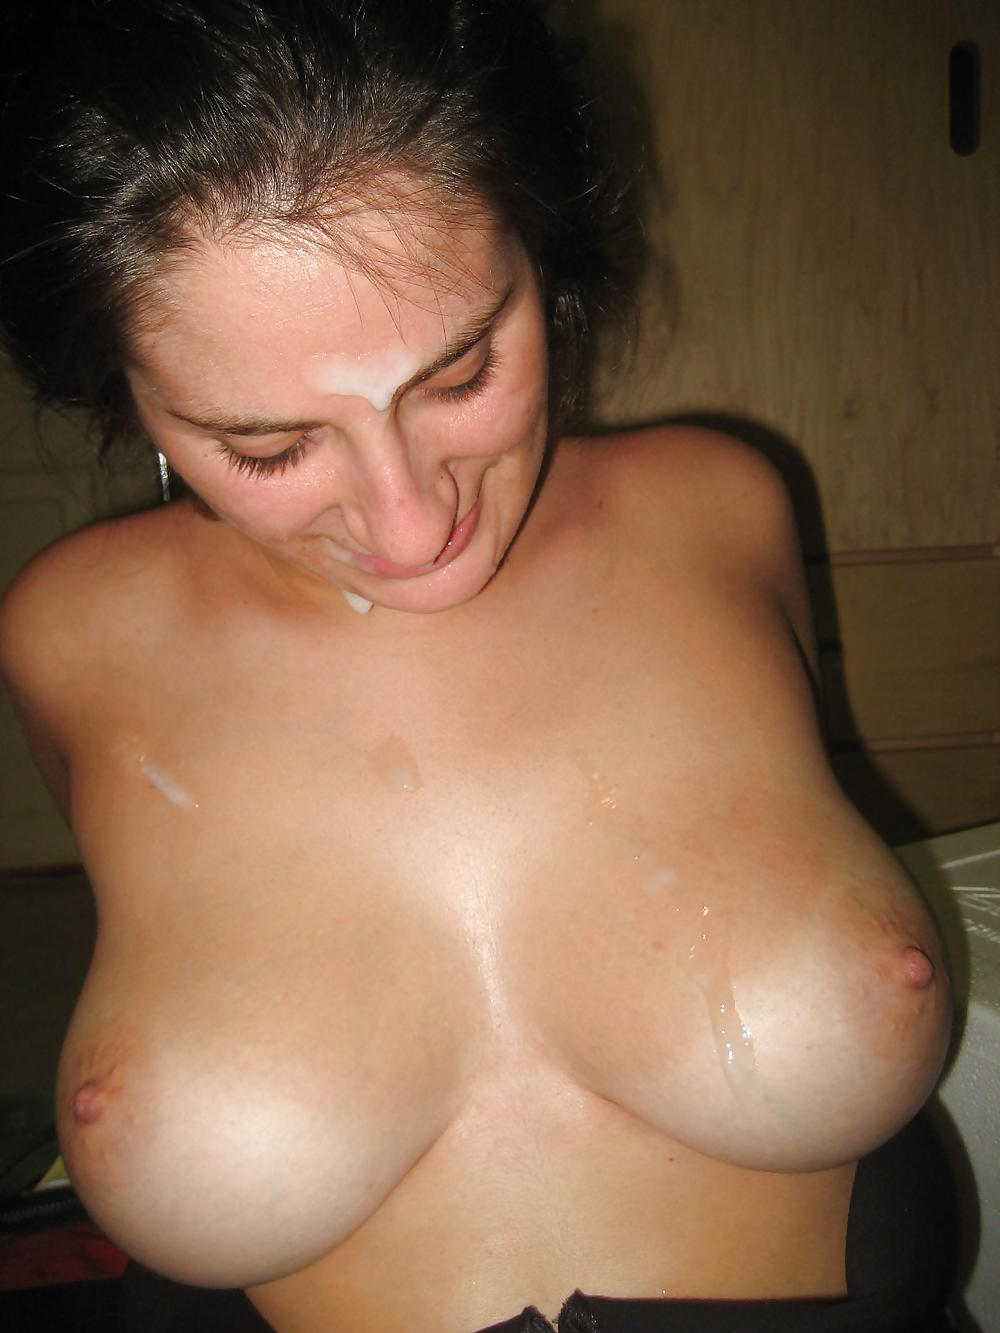 Woman with big boobs